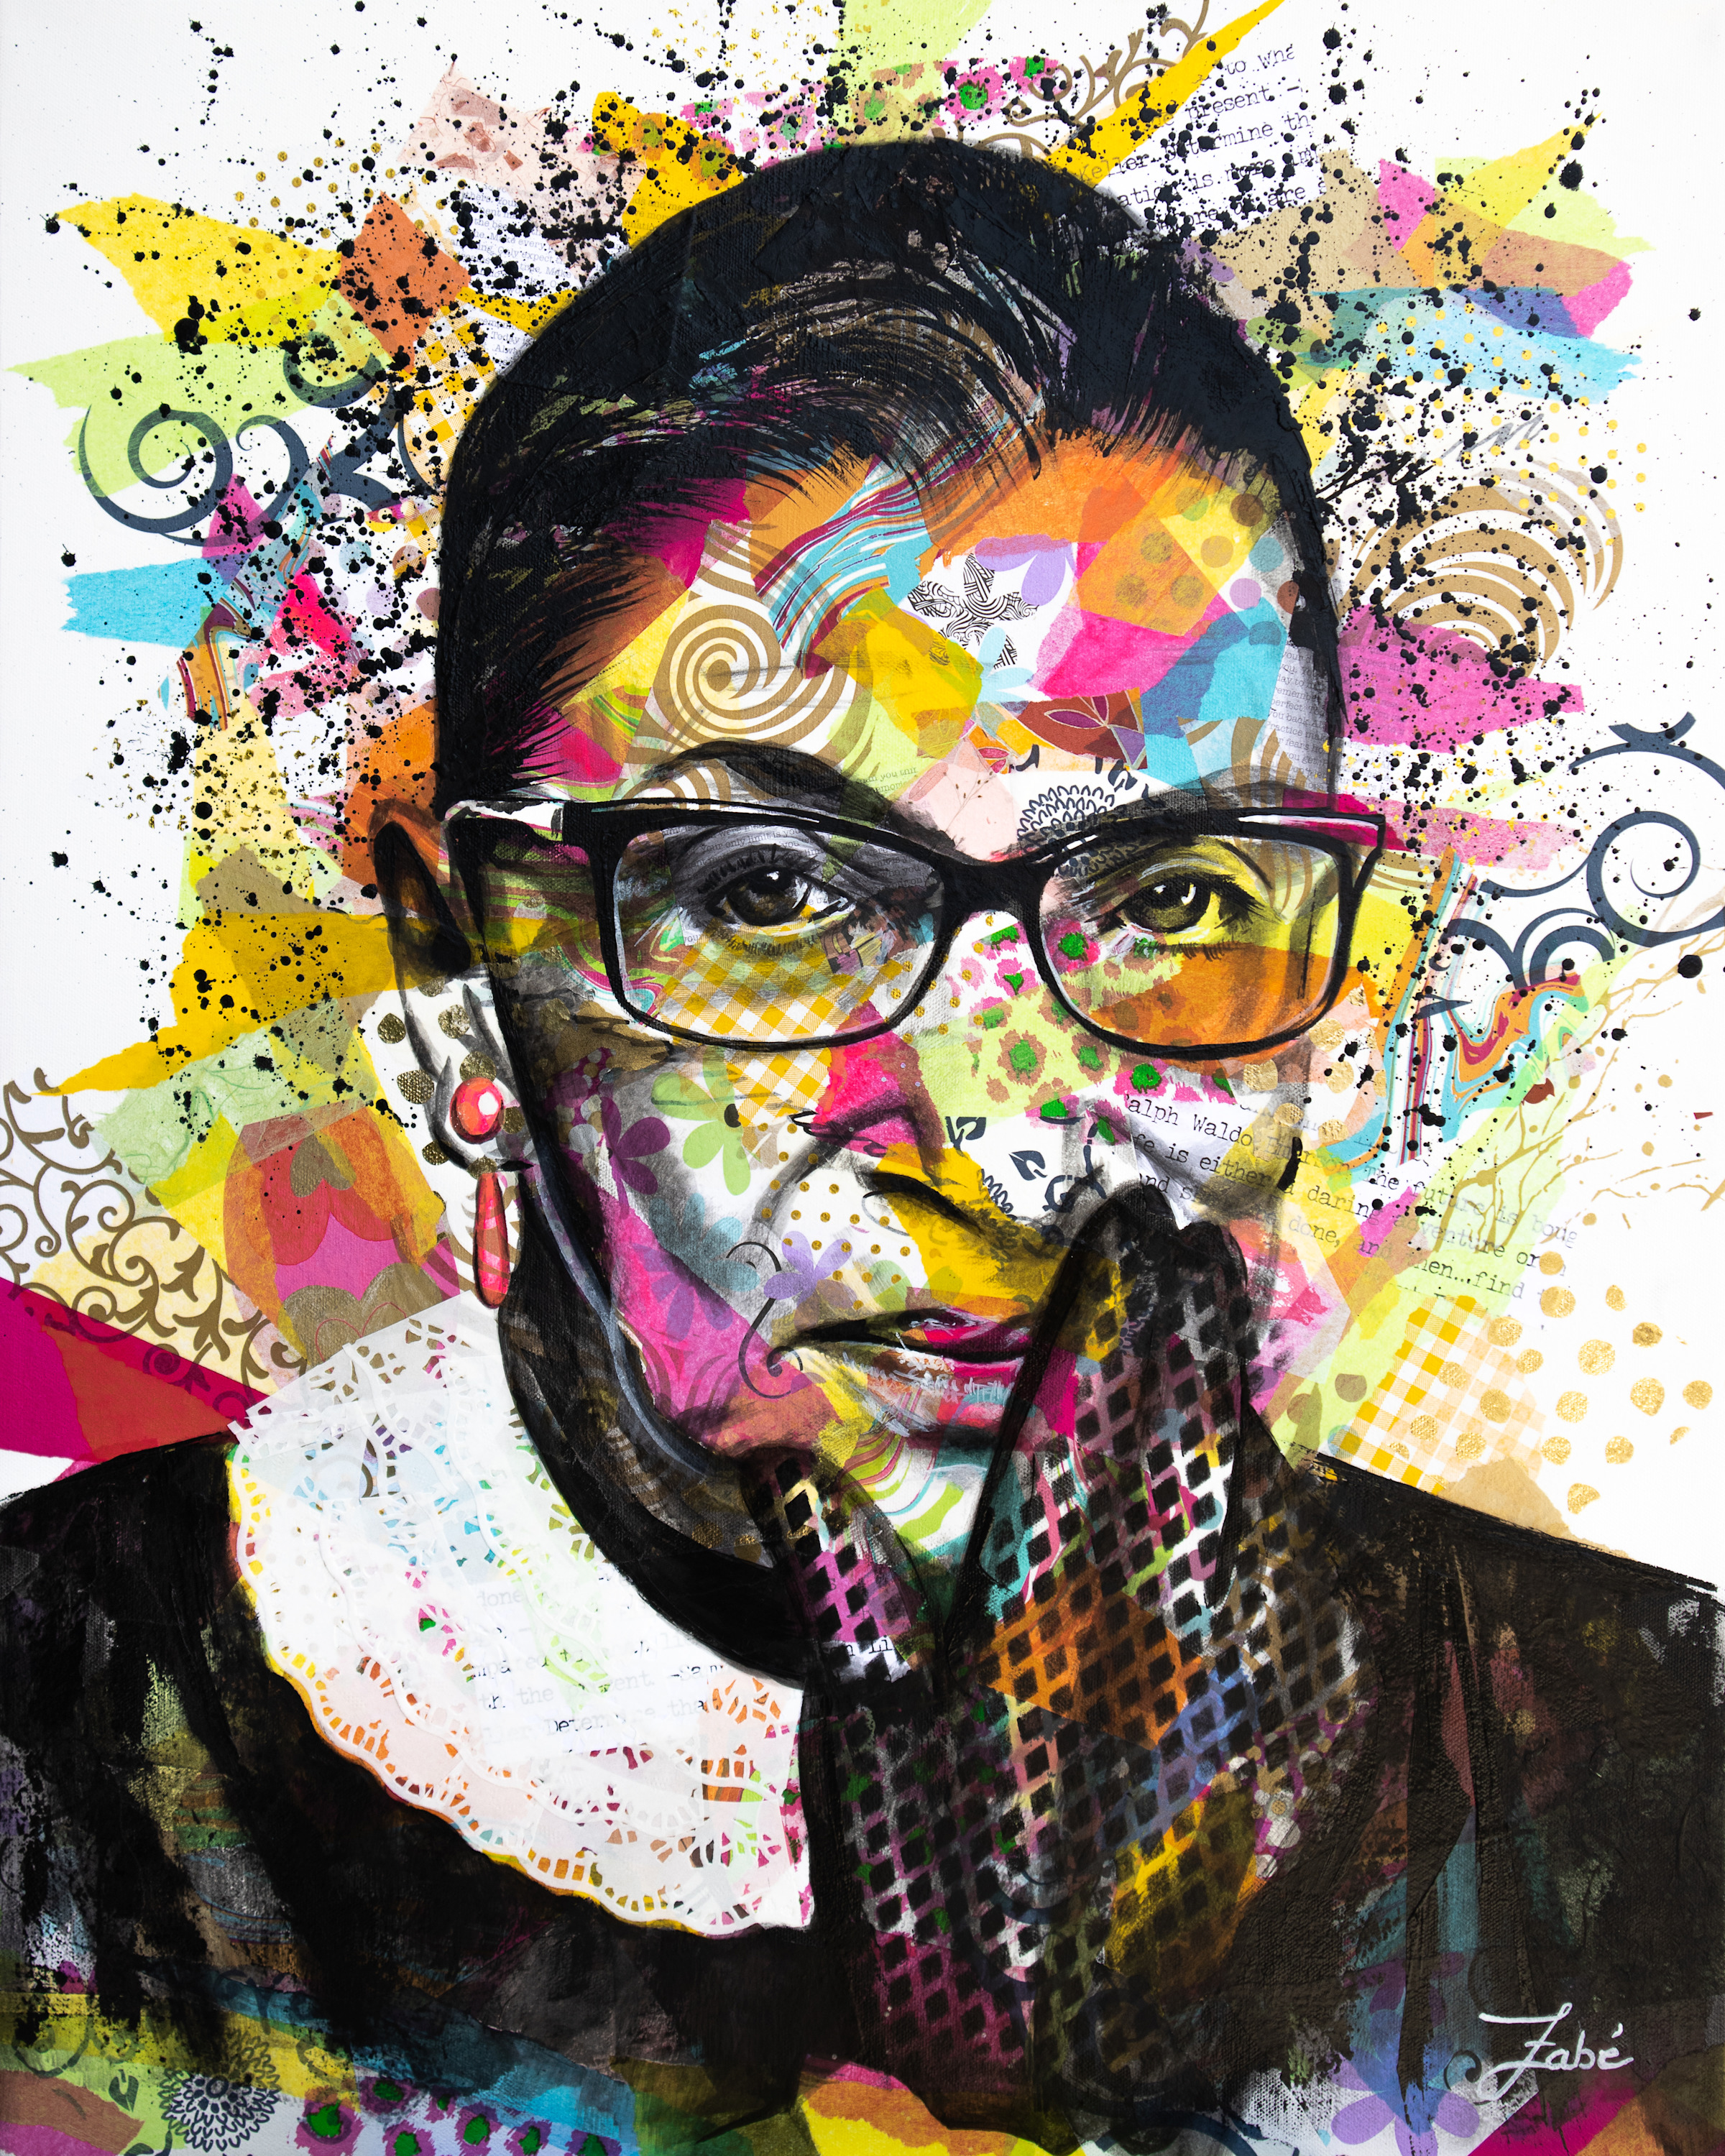 24x30 zabe arts strong women ruth bader ginsburg portrait collage painting jaqxhw